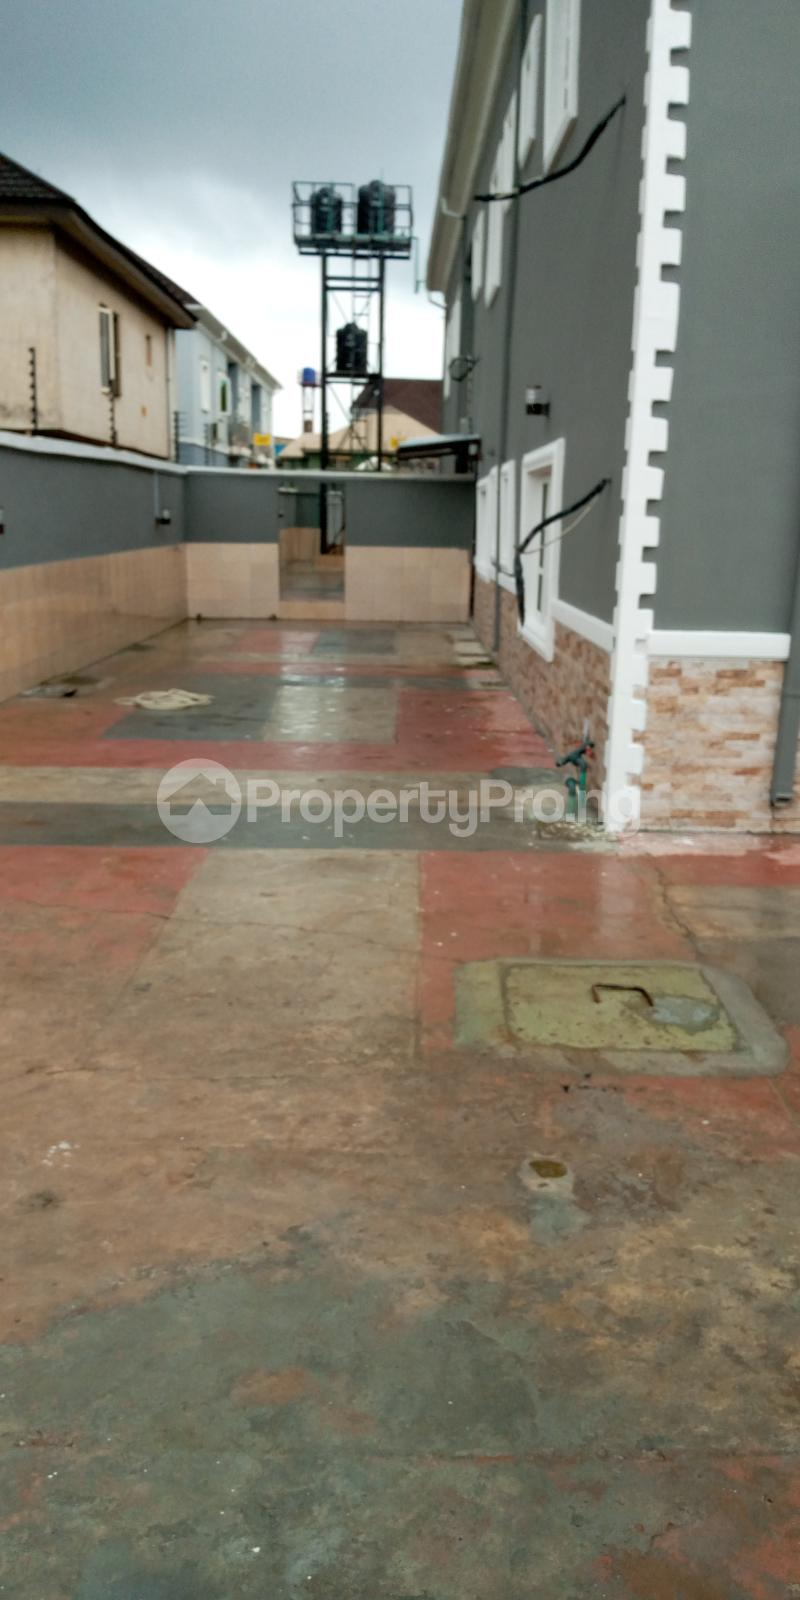 3 bedroom Flat / Apartment for rent Olive Ago palace Okota Lagos - 1